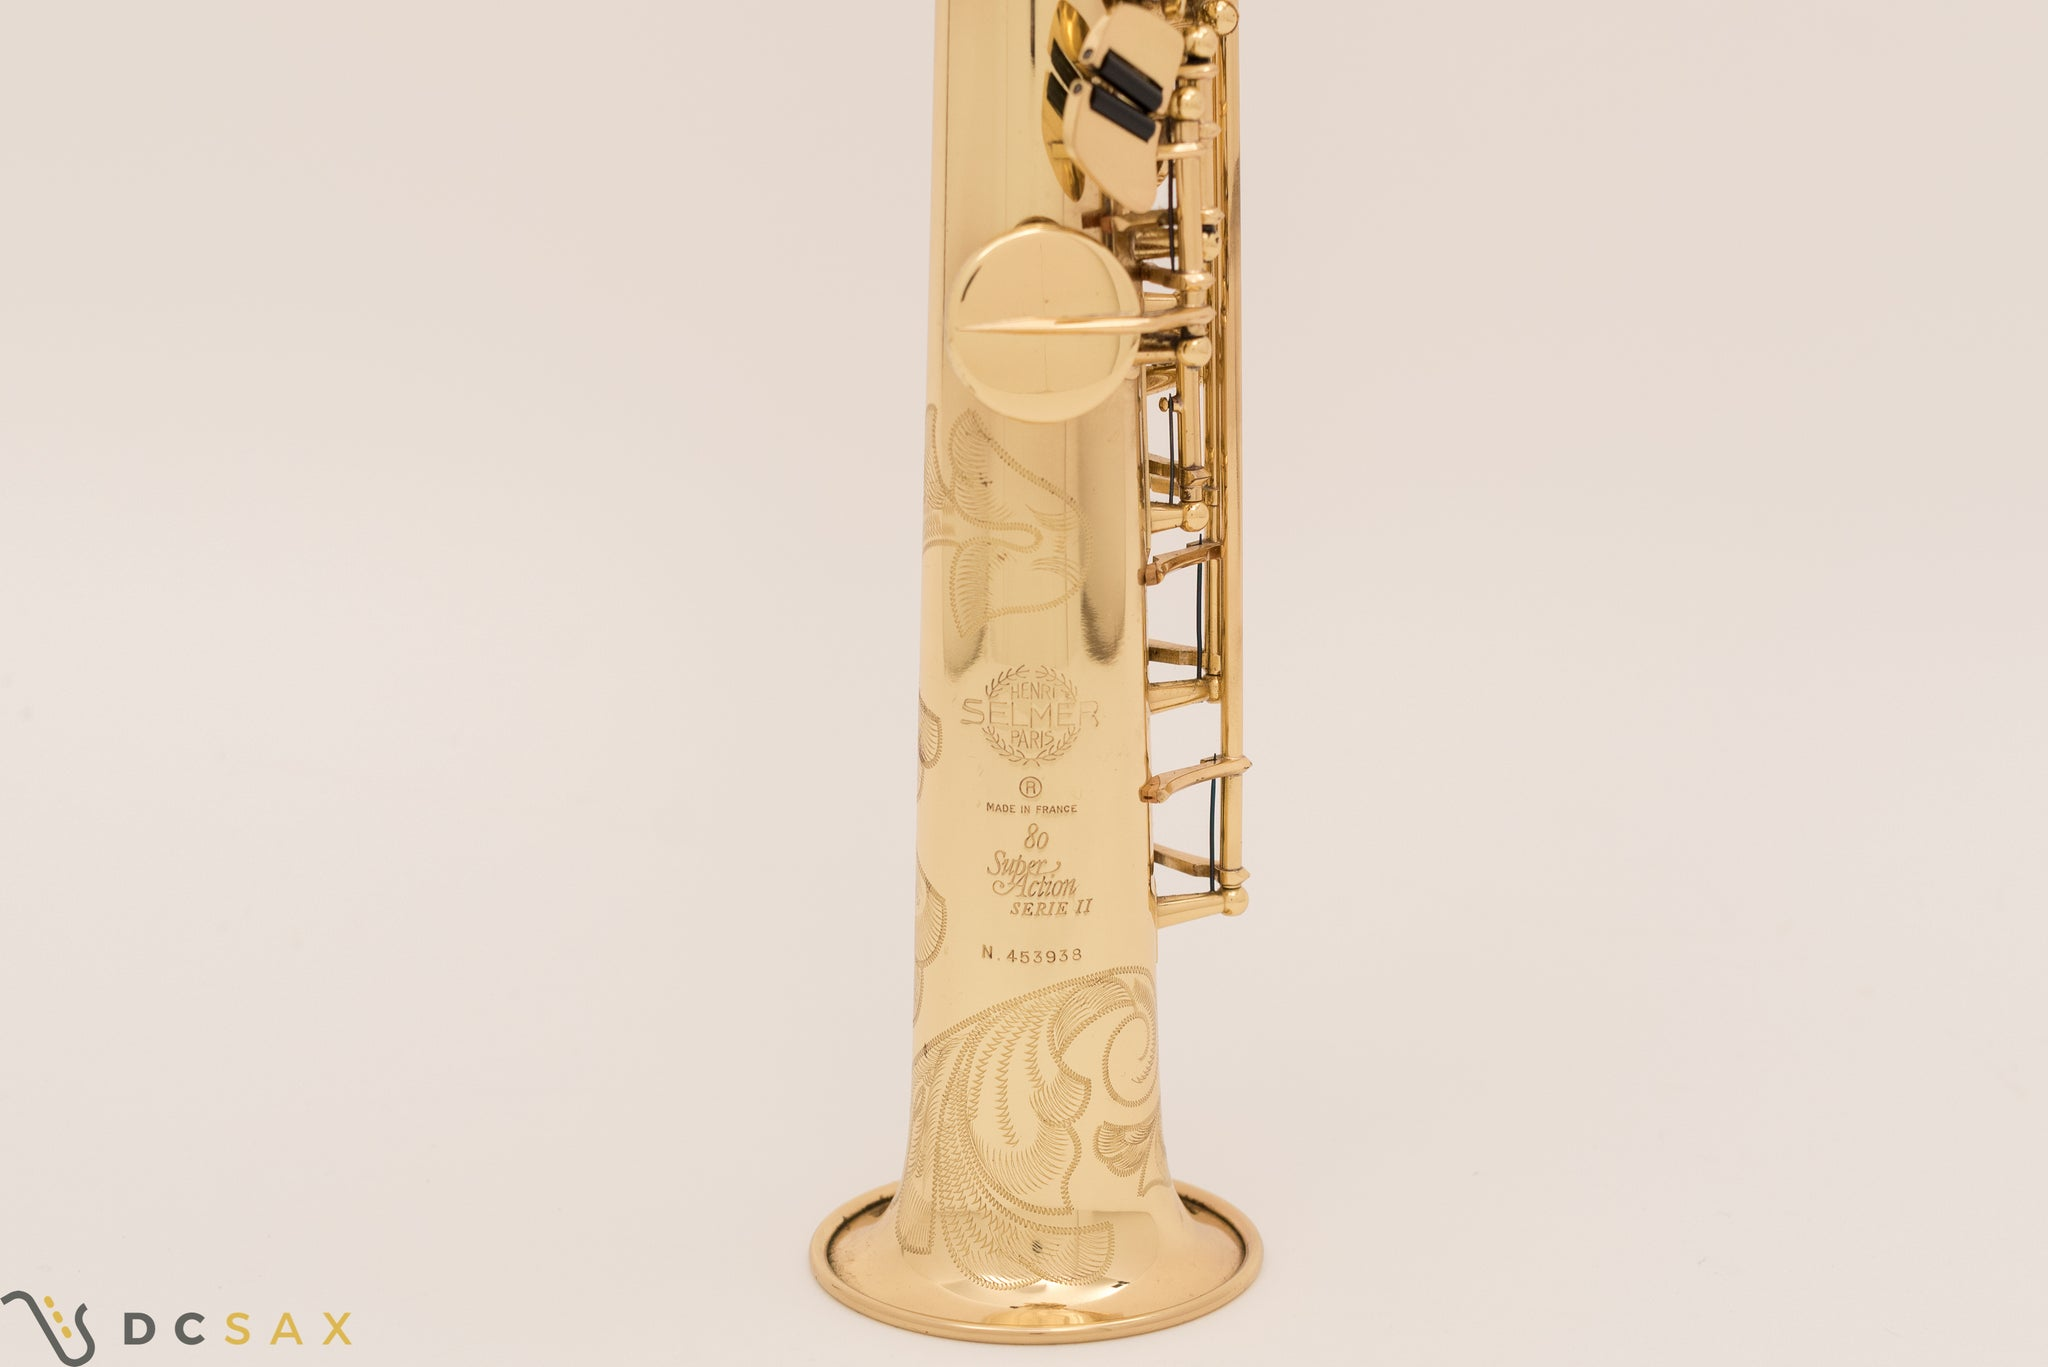 Selmer Super Action Series II Soprano Saxophone, Just Serviced